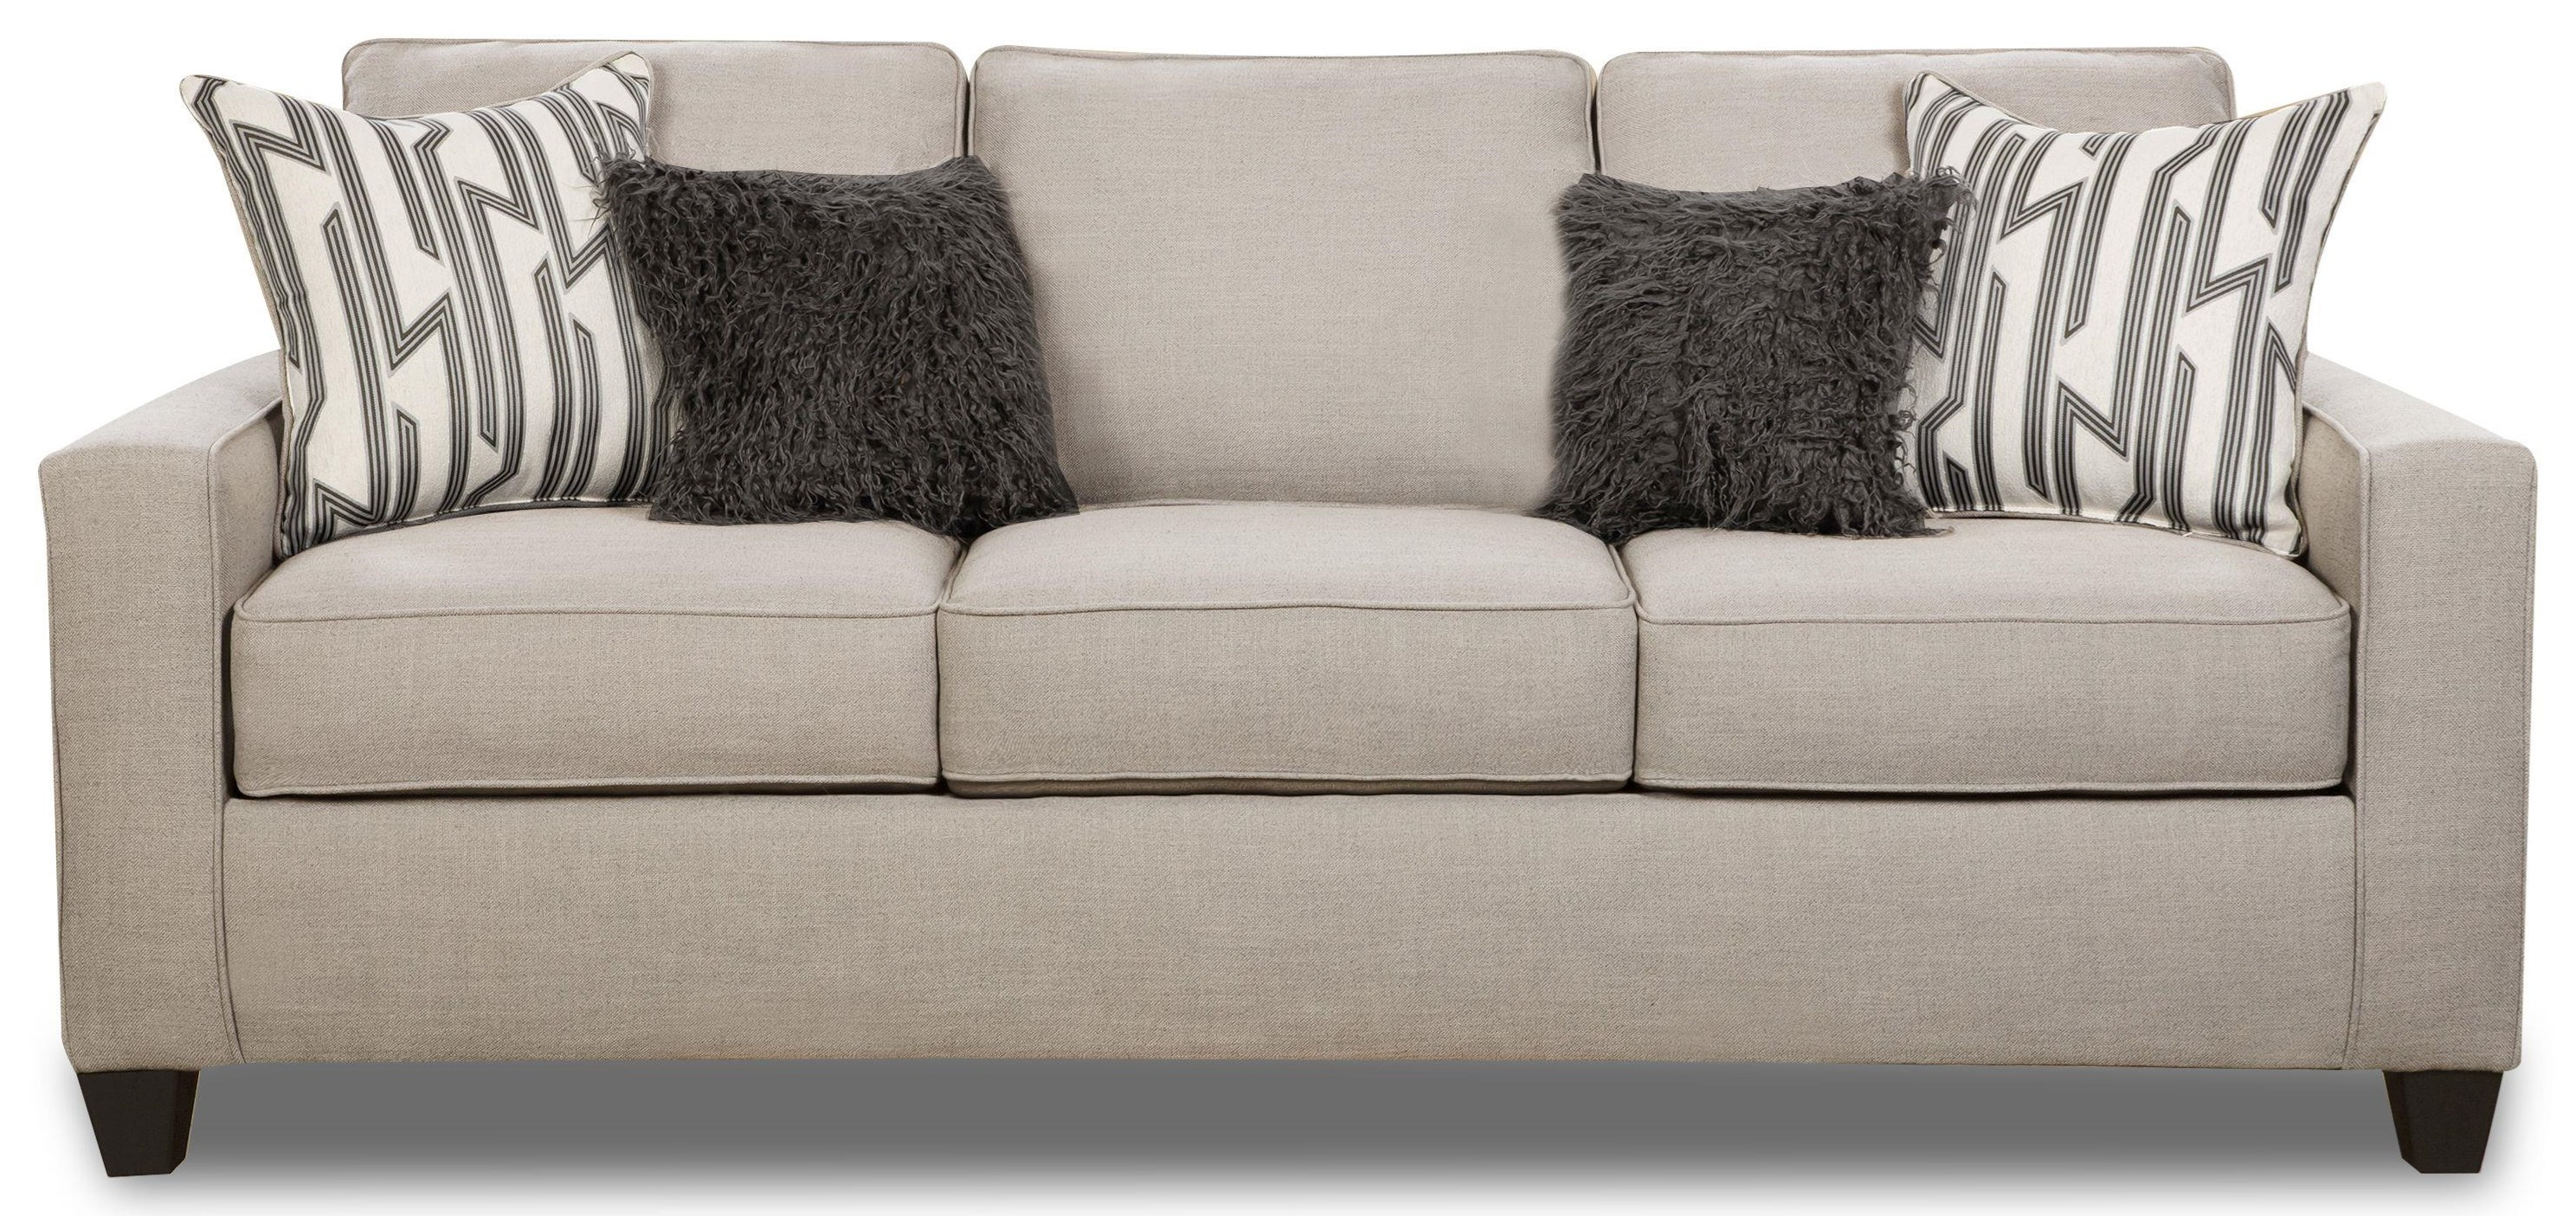 Lynx  by Behold Home at Becker Furniture